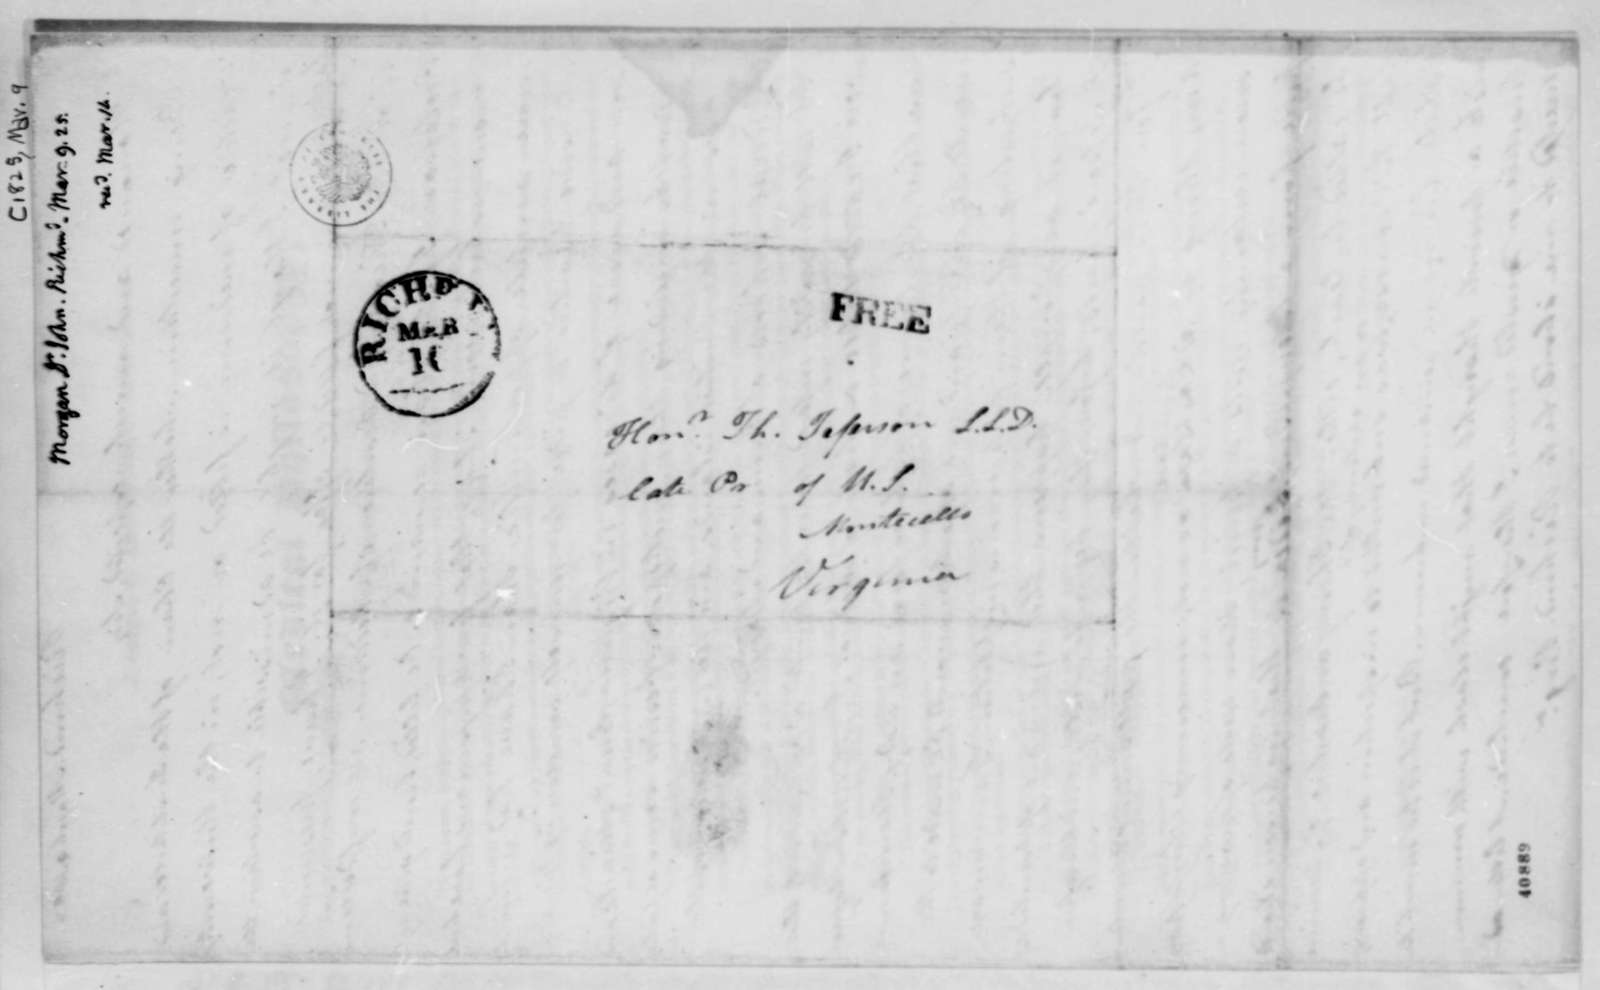 John Morgan to Thomas Jefferson, March 9, 1825, with Circular on Medical Philosophy